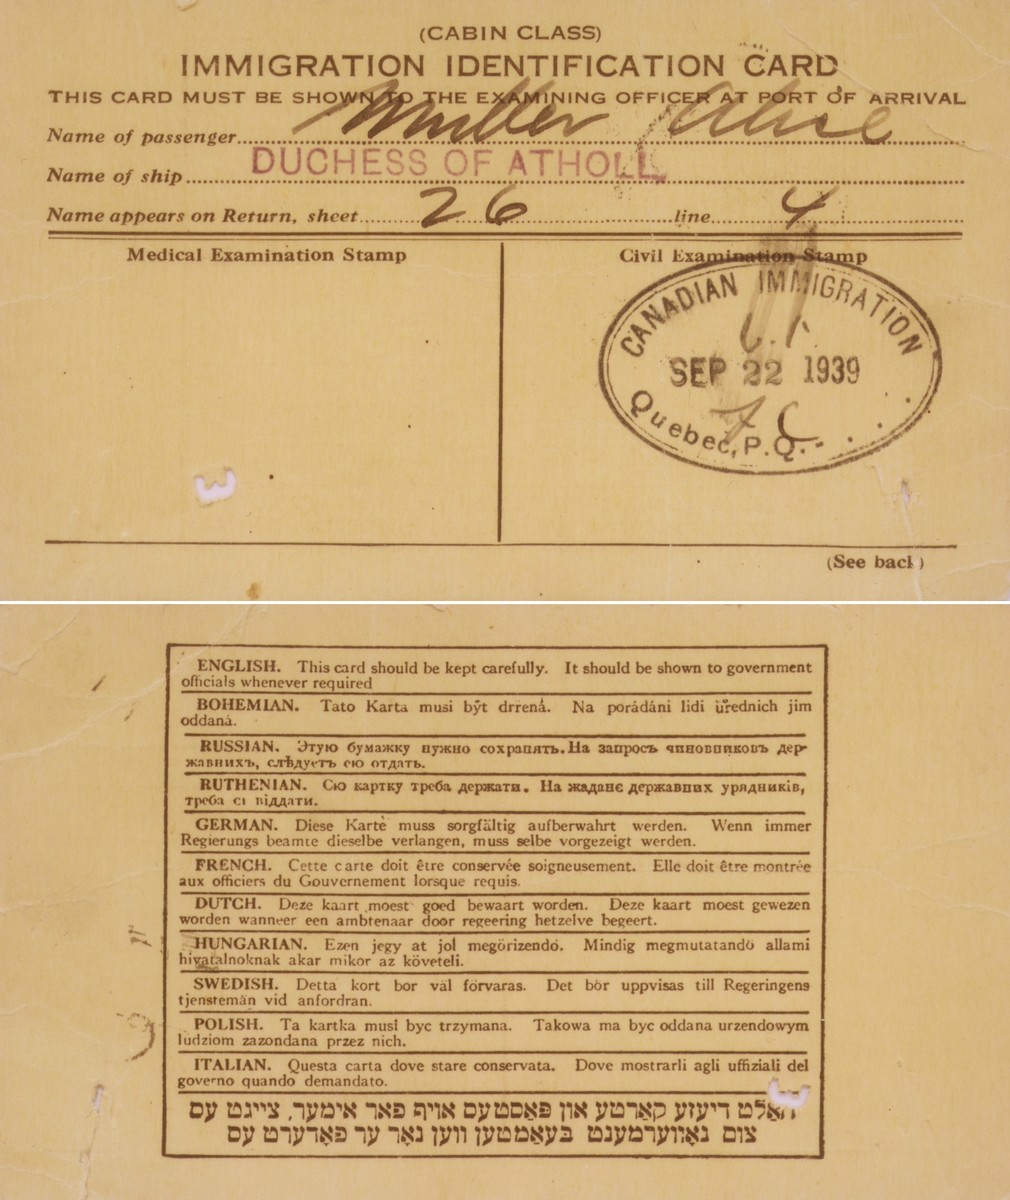 Immigration identification card (front and reverse side), dated September 22, 1939, for the Jewish refugee child, Alice Muller, who arrived in Montreal aboard the SS Duchess of Atholl.